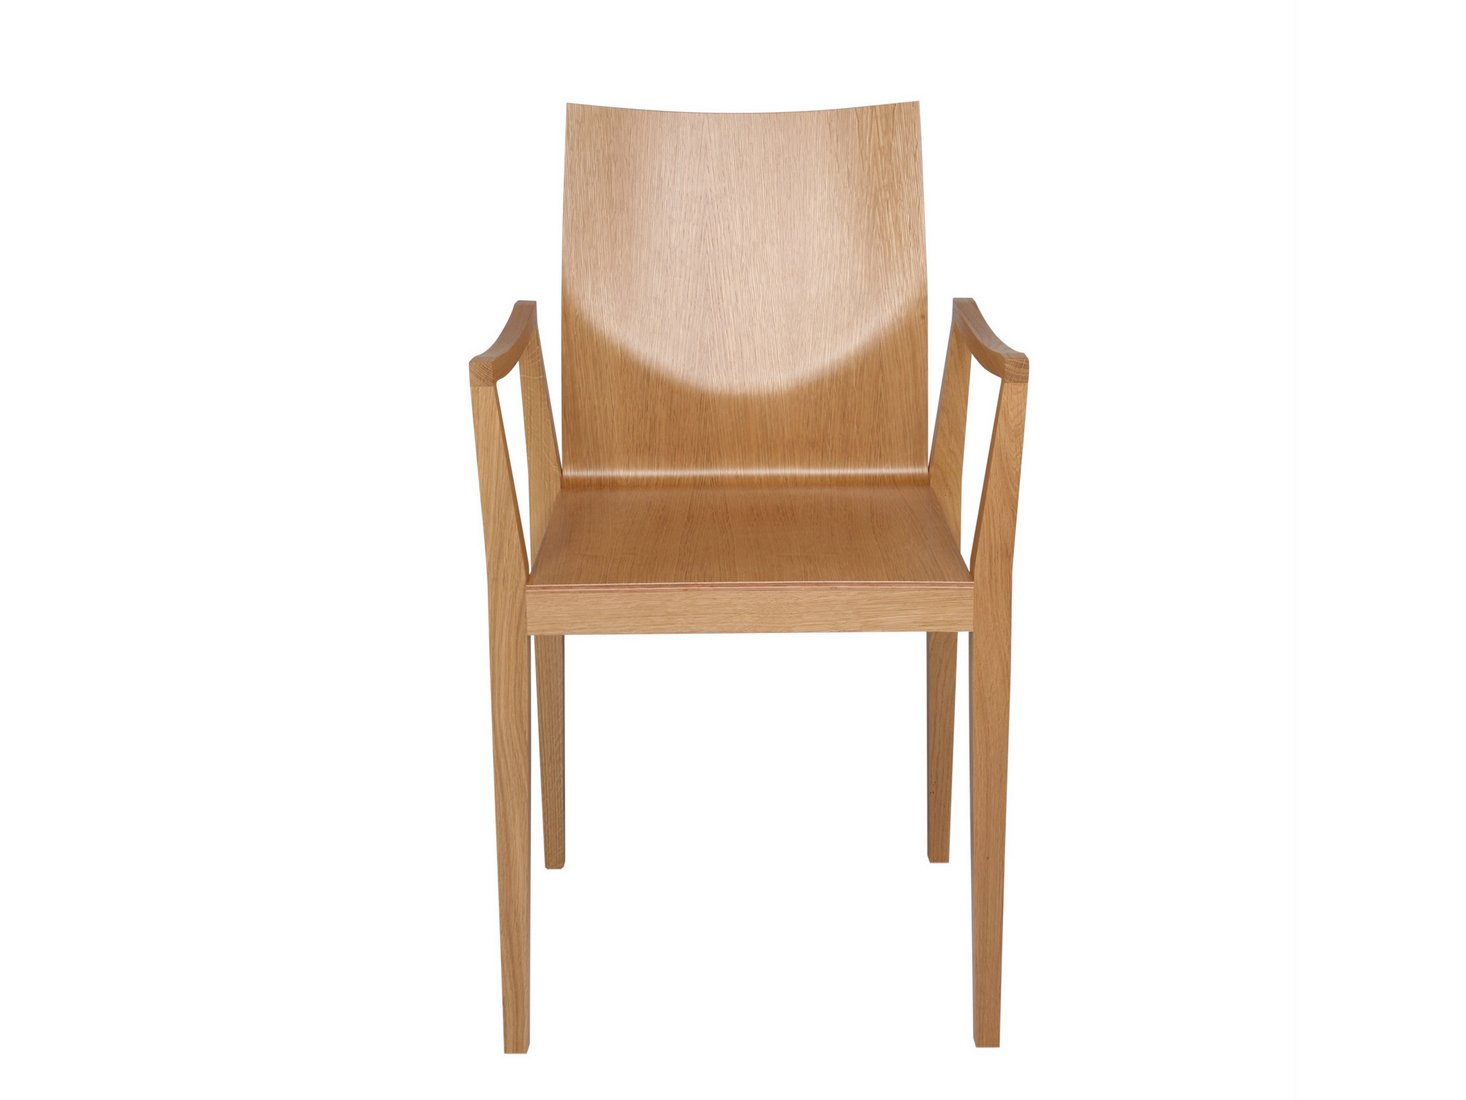 Wooden chairs with armrest - Wooden Chairs With Armrest 24